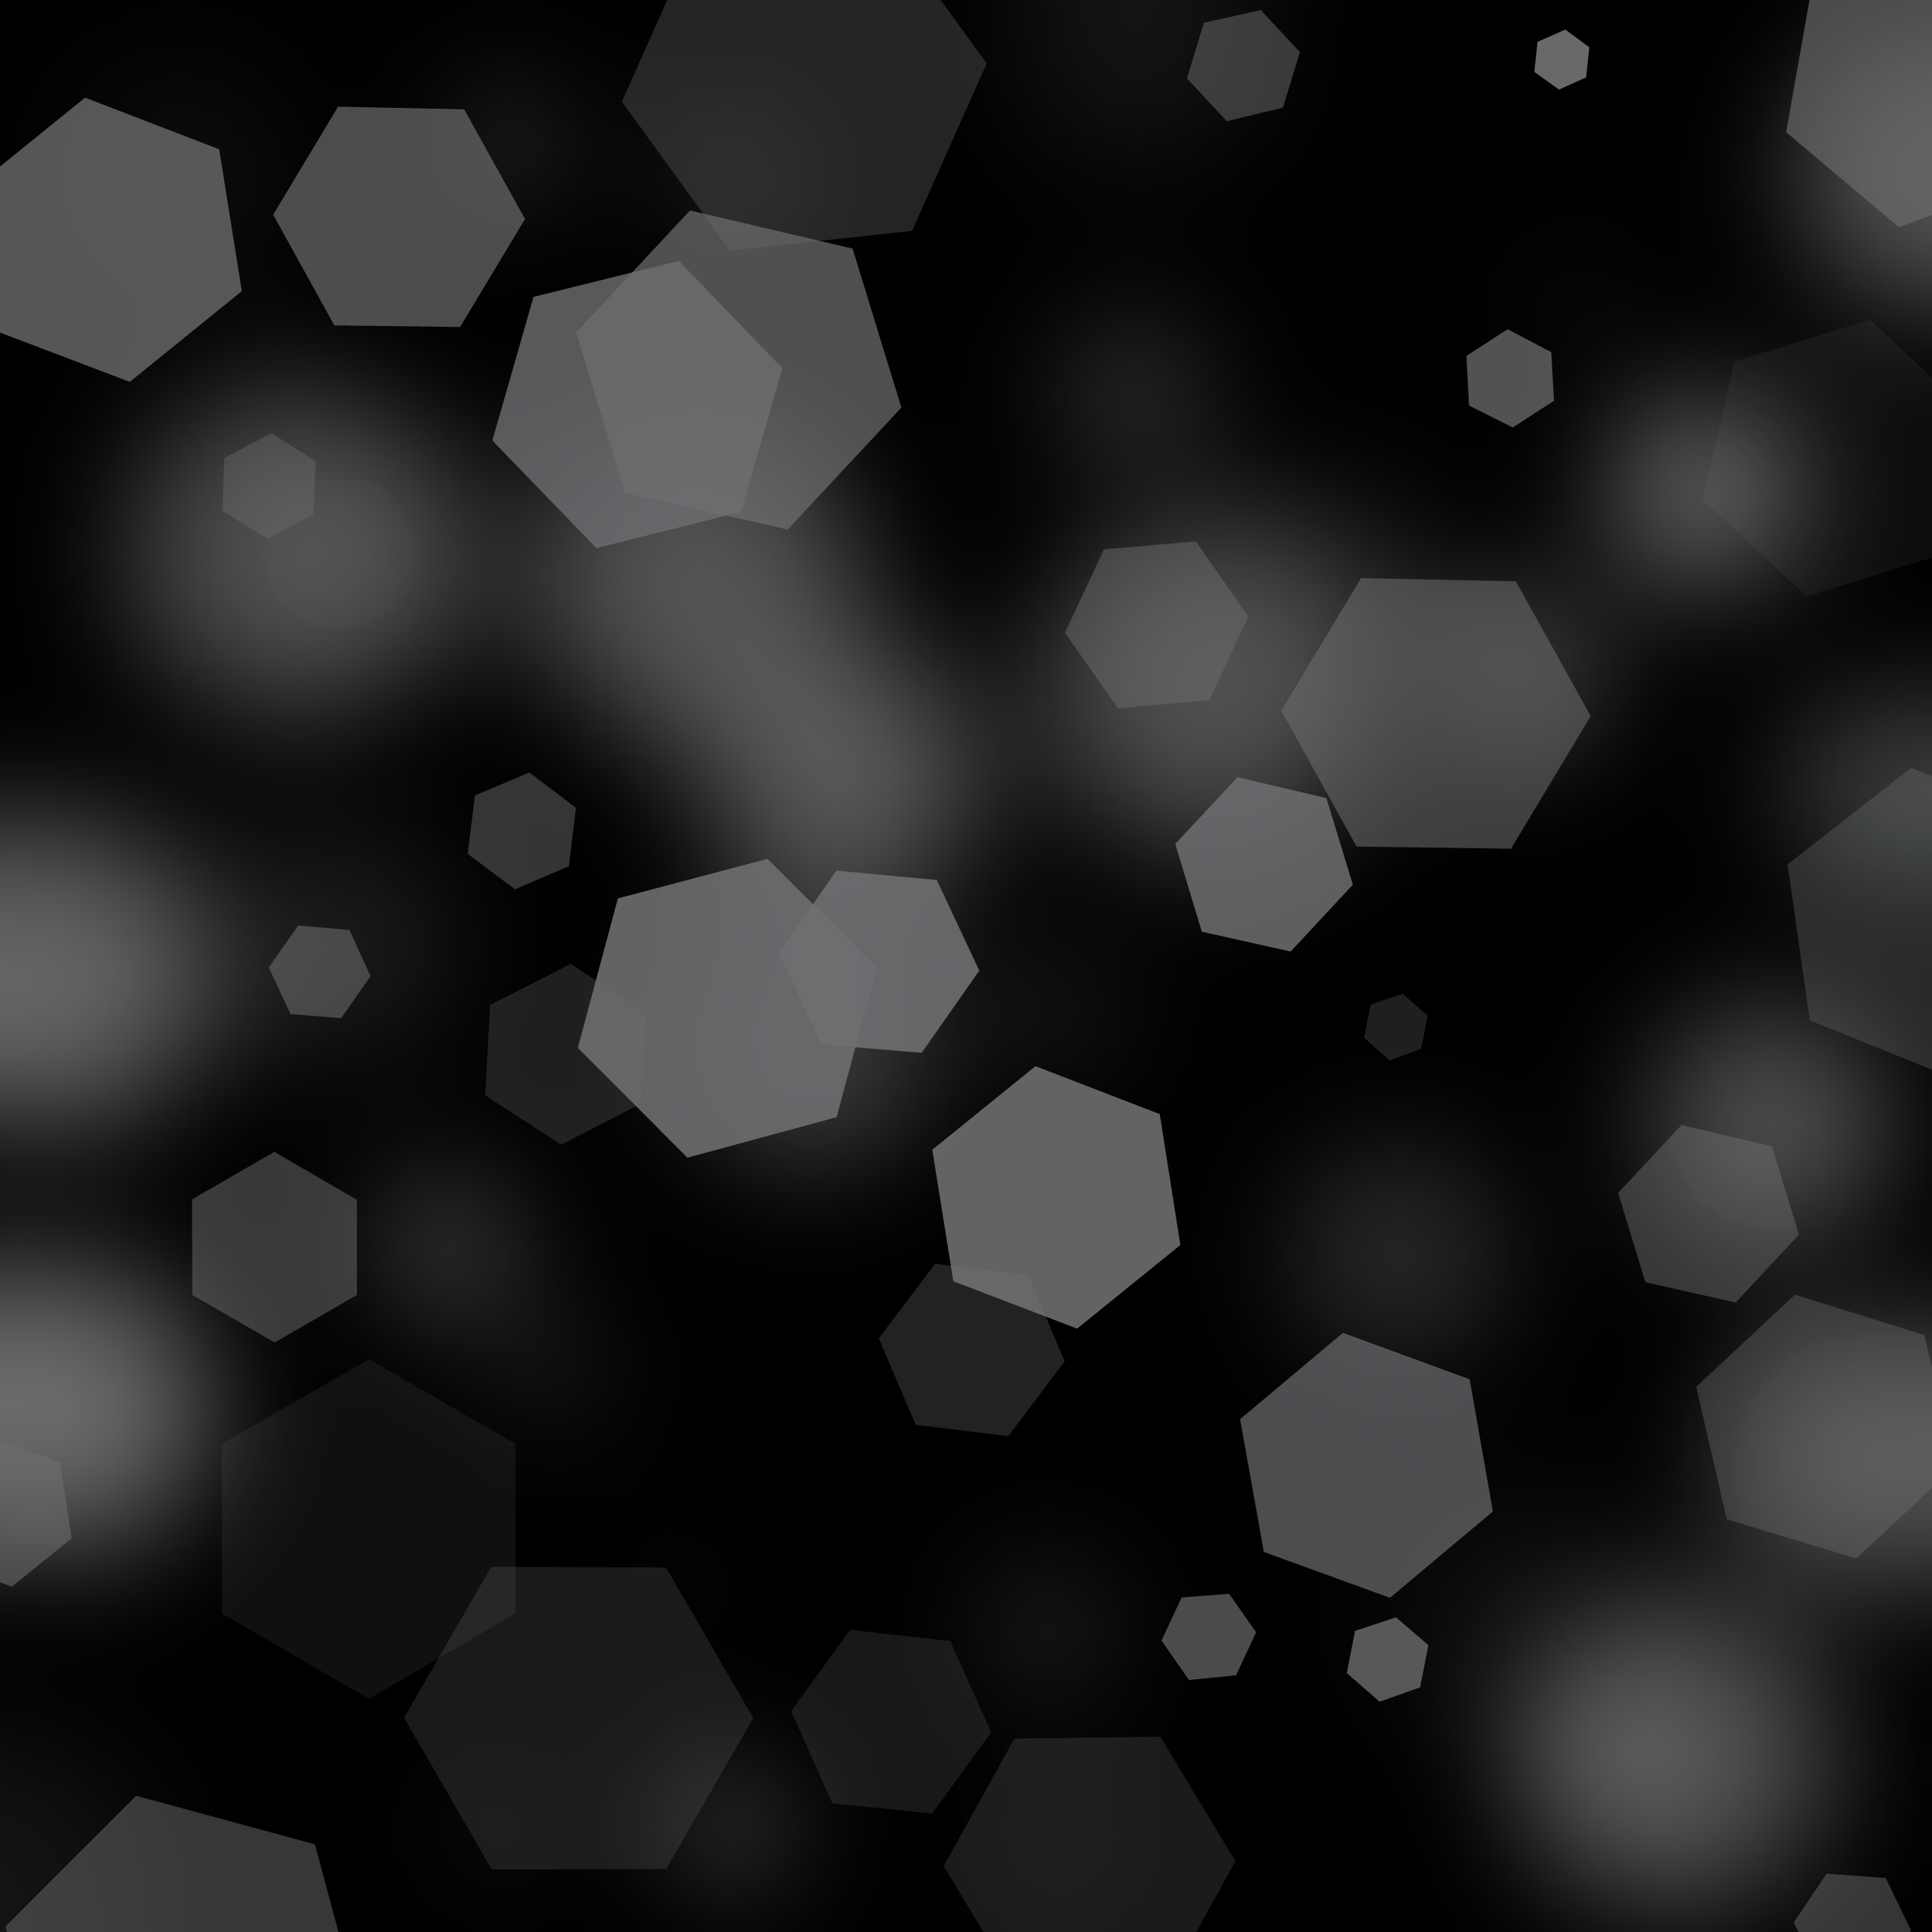 HD Black Abstract Wallpaper For Iphone, Android, Mac & PC